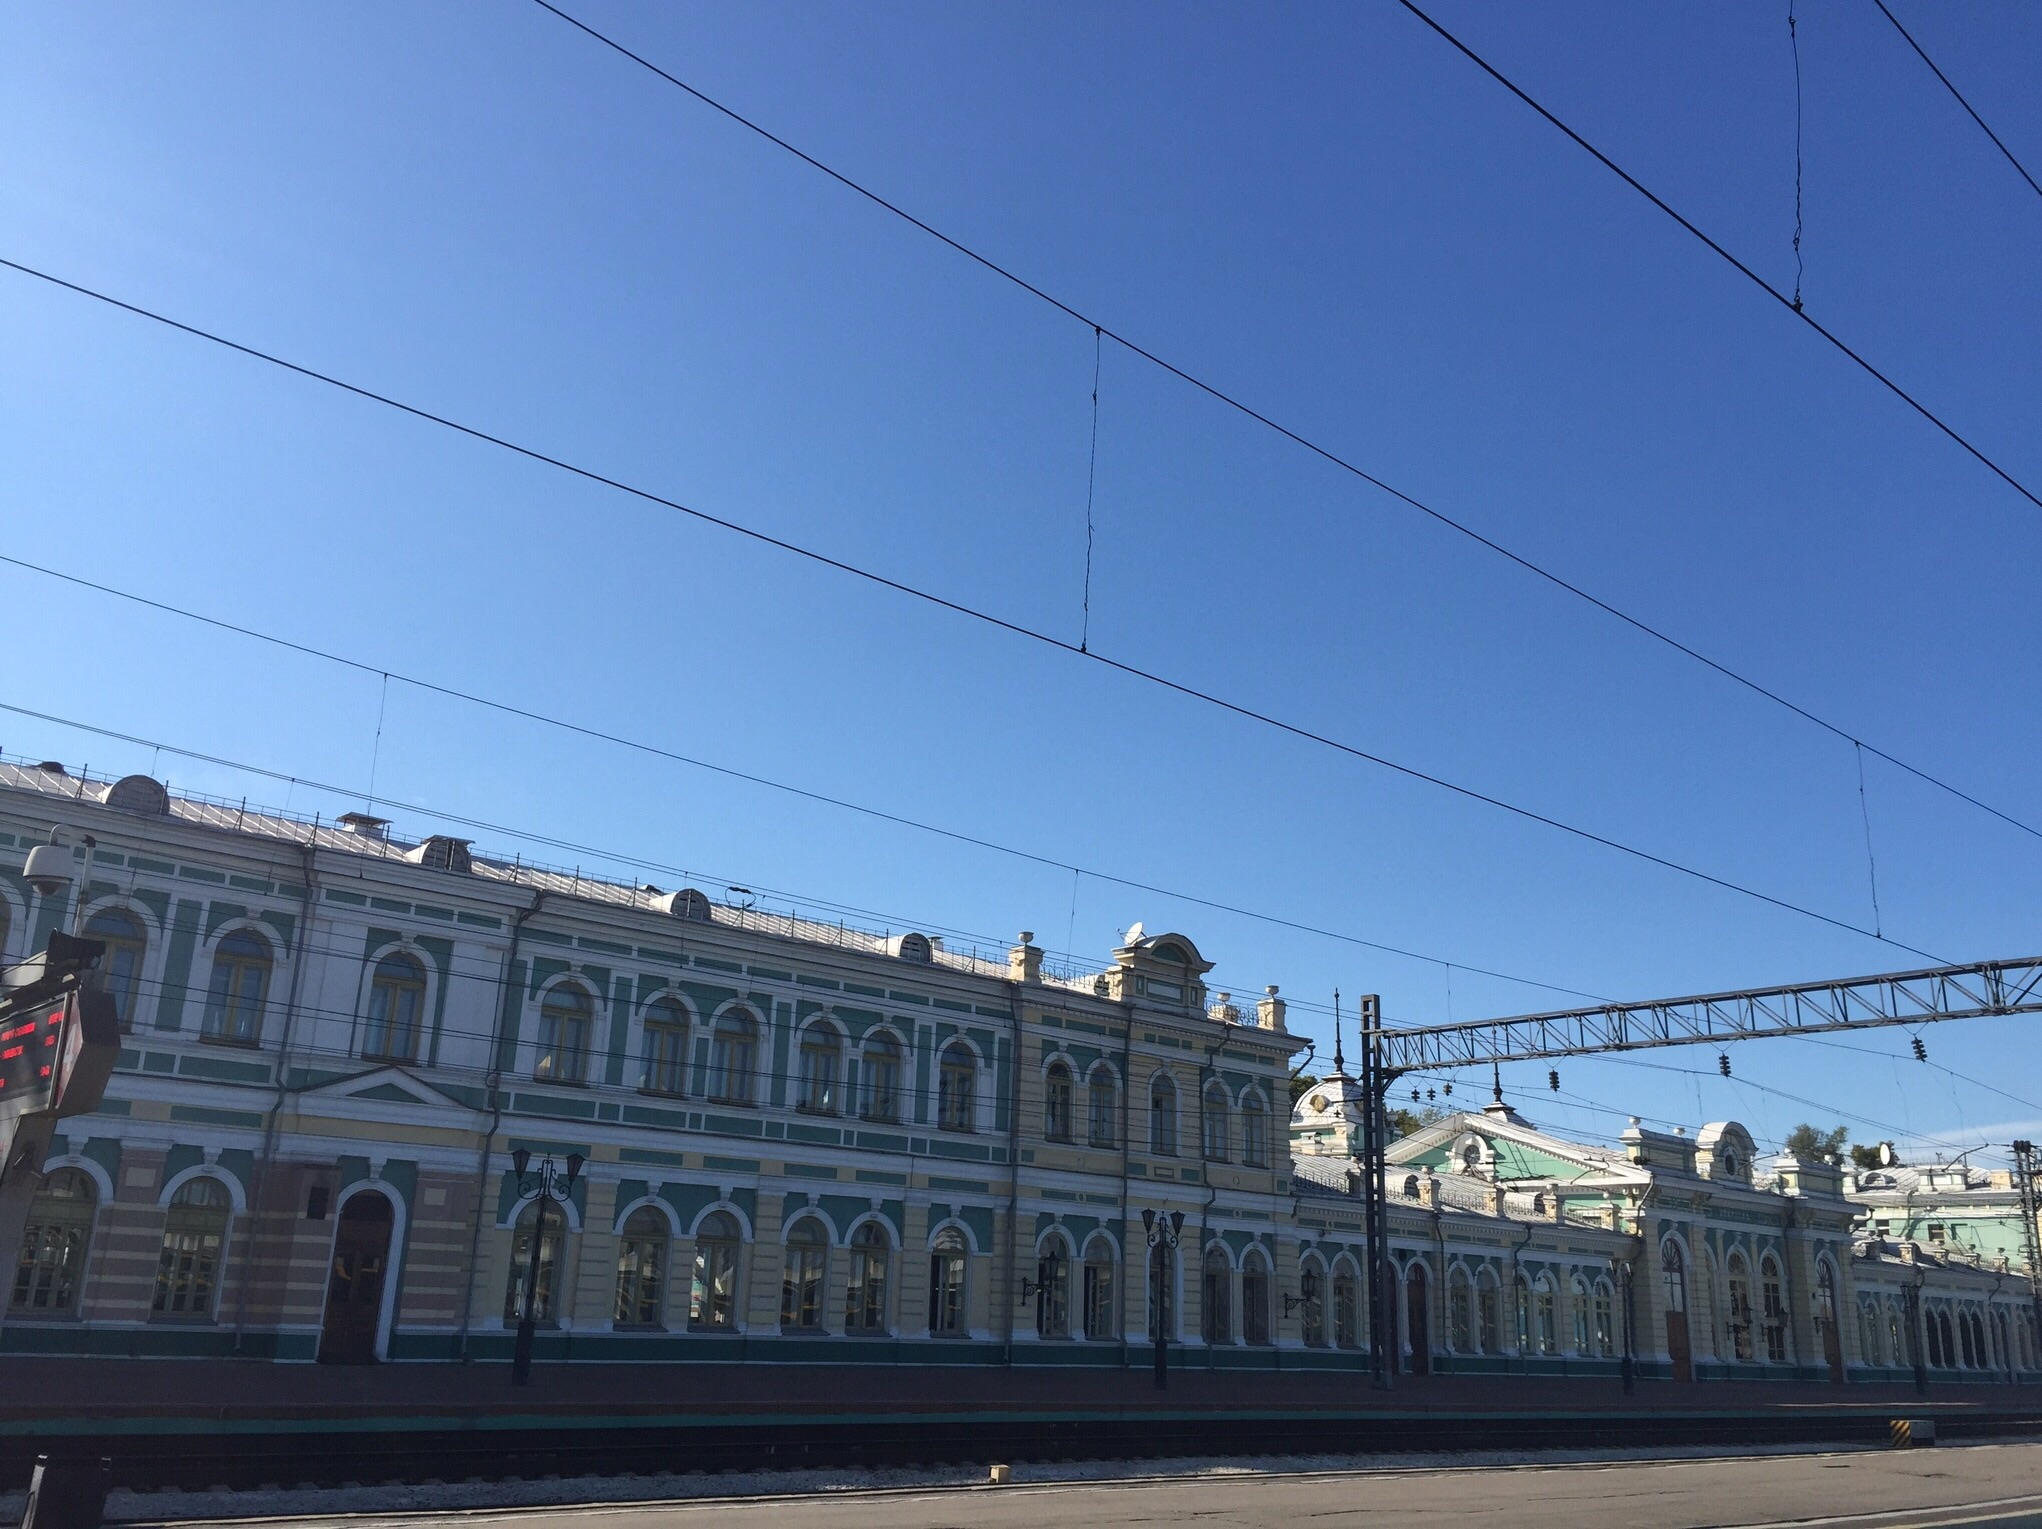 Arrival at the trainstation in Irkutsk.